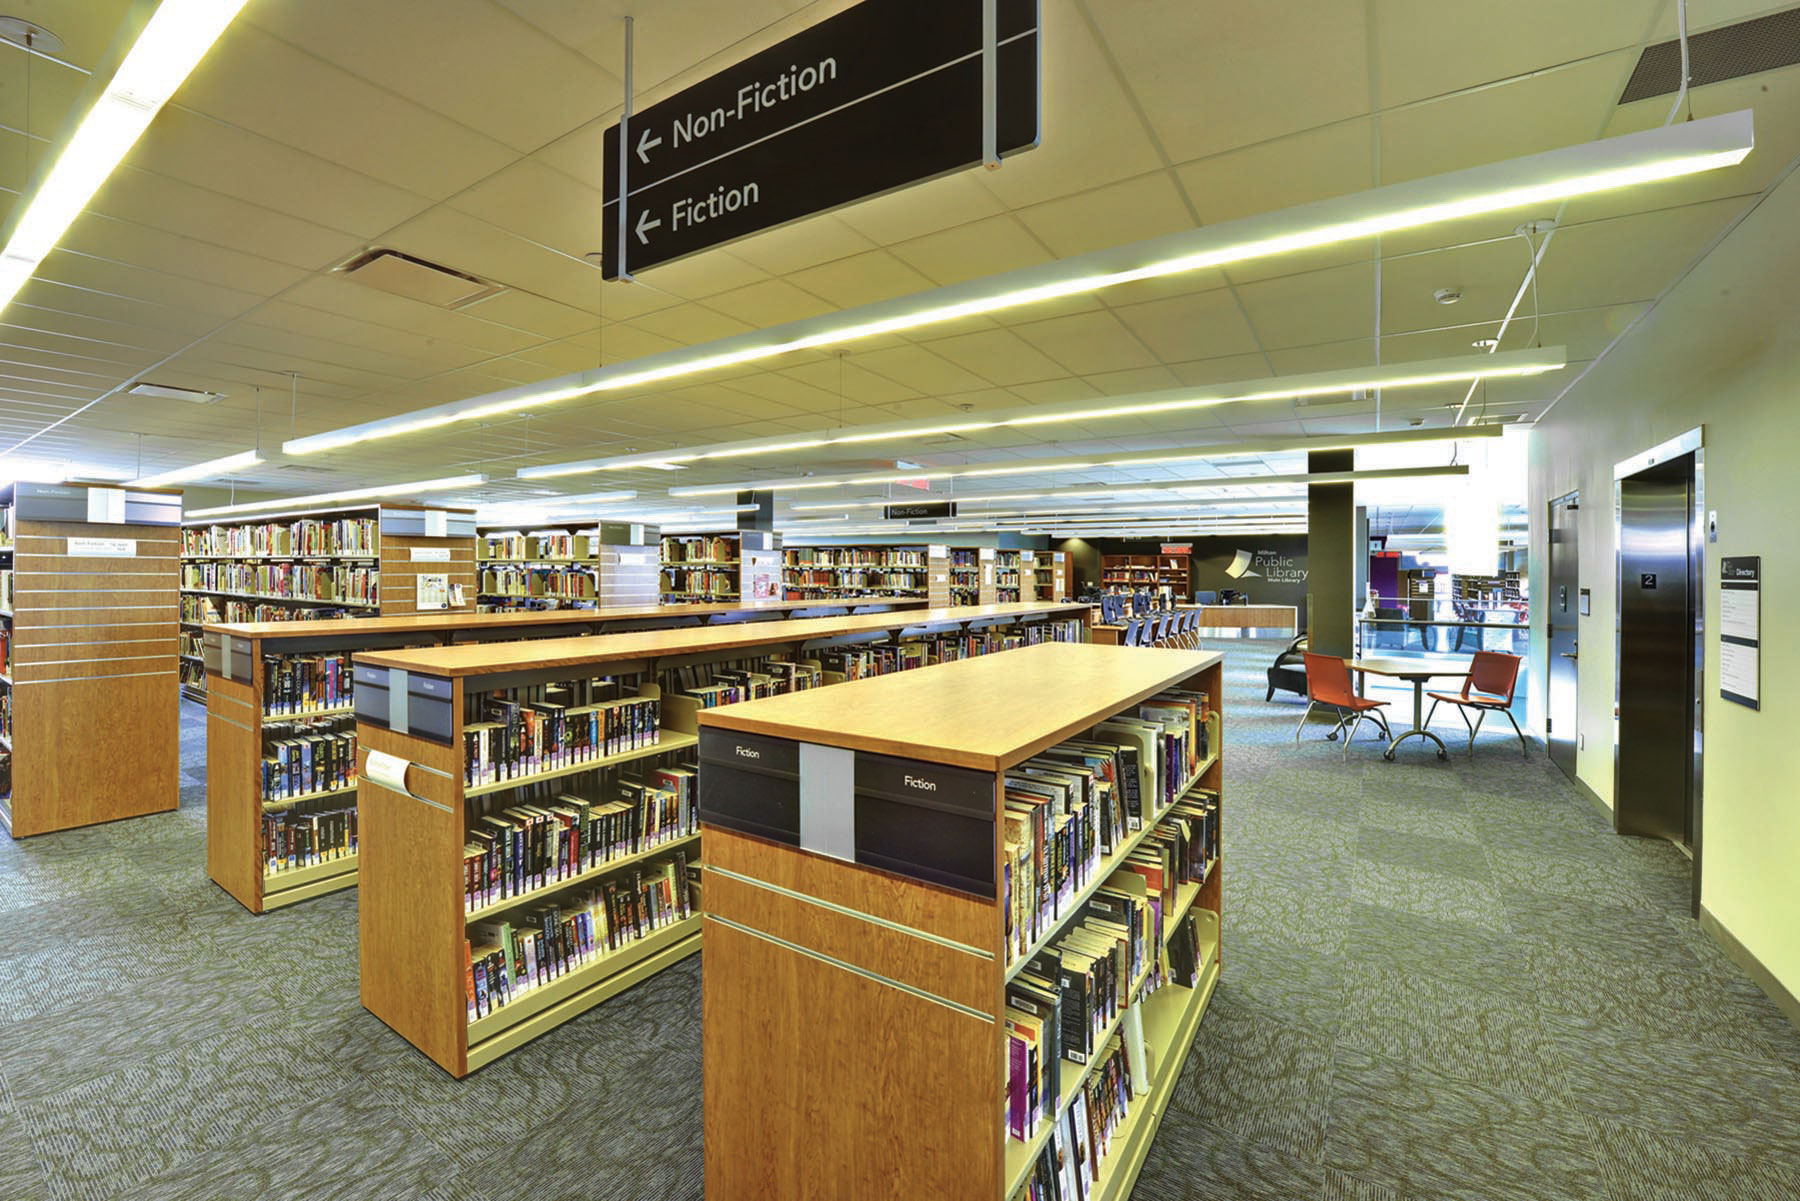 Rows of wood bookshelves with overhead signage